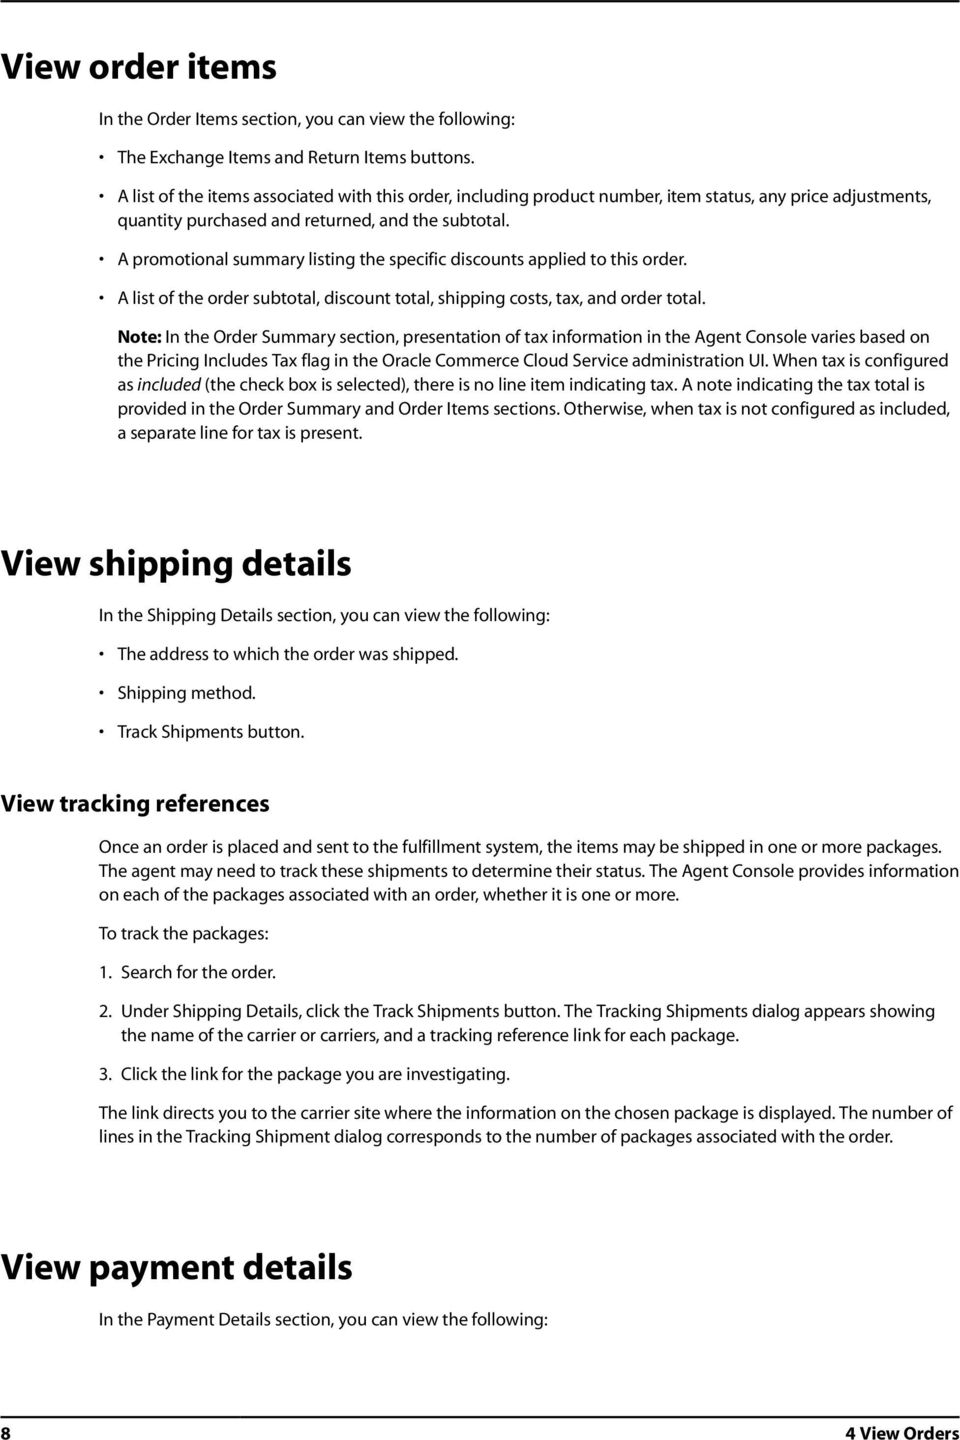 A promotional summary listing the specific discounts applied to this order. A list of the order subtotal, discount total, shipping costs, tax, and order total.